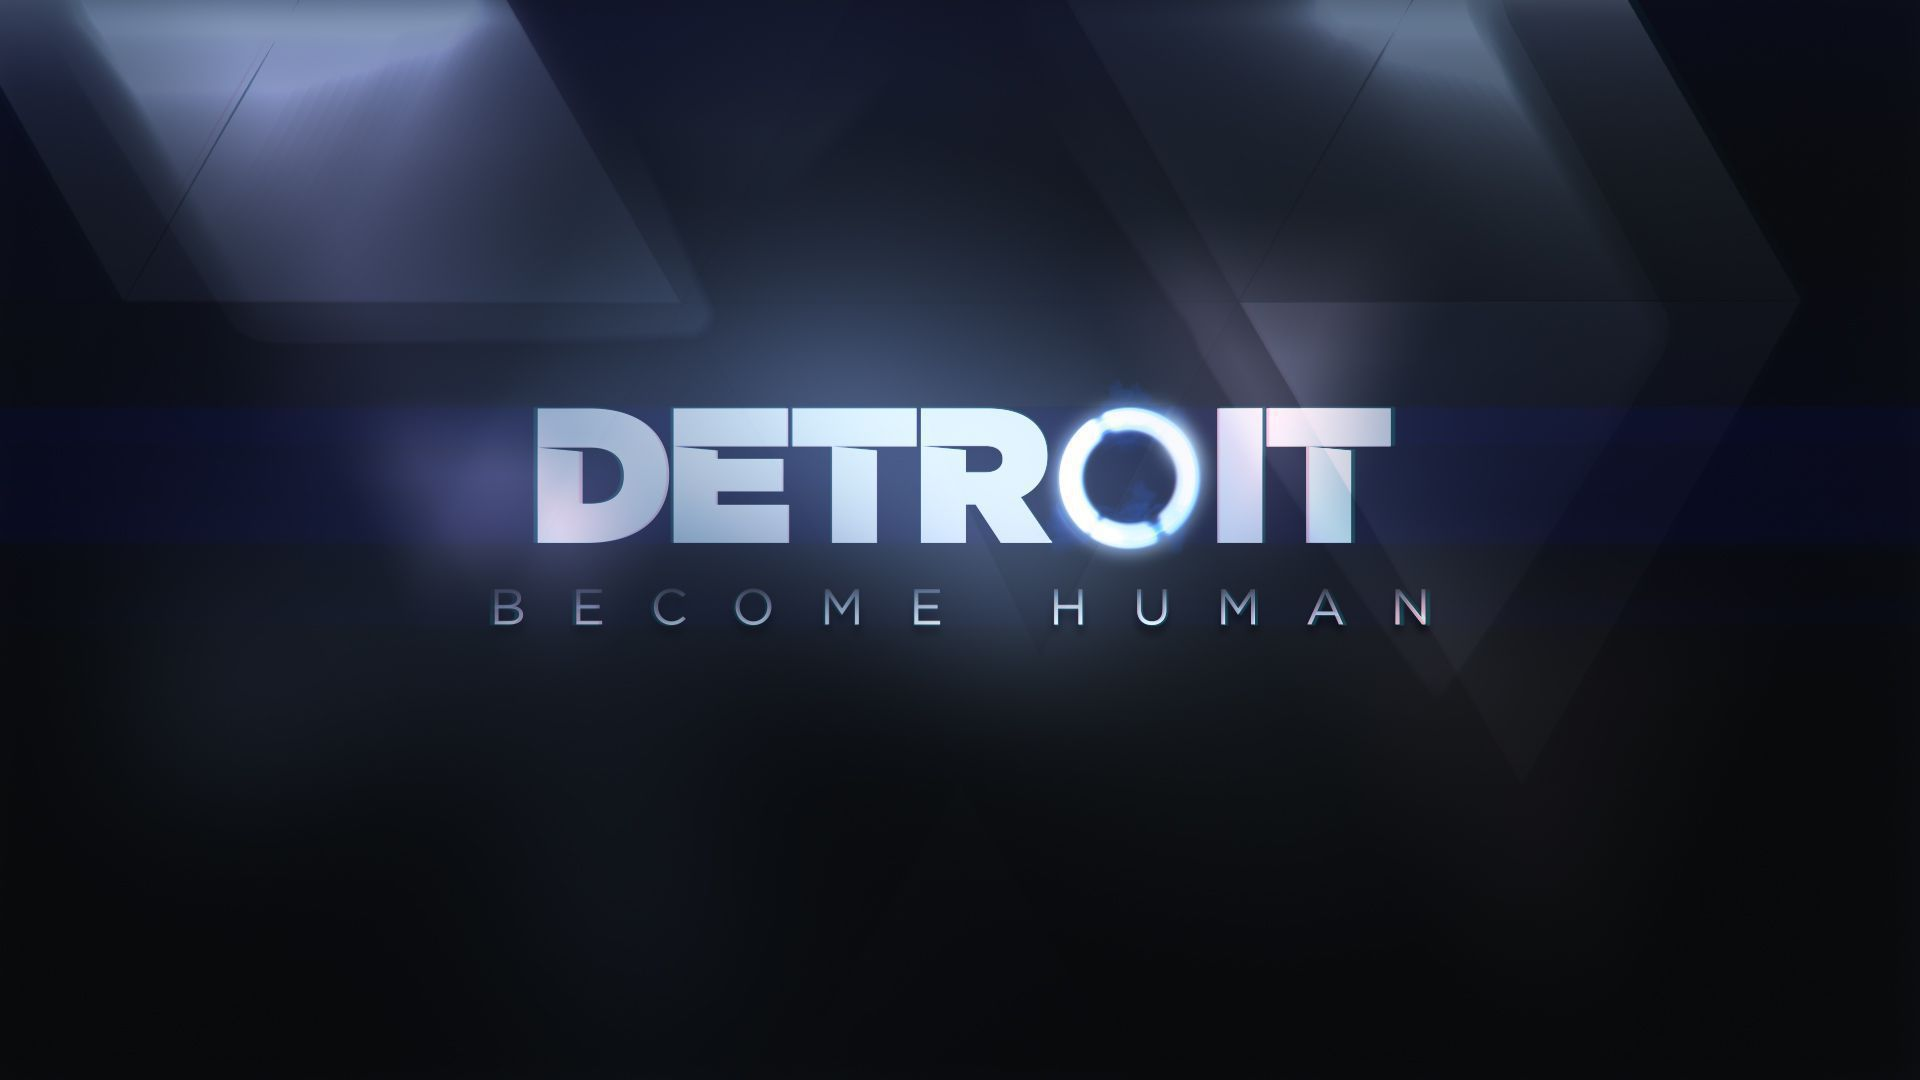 Detroit Become Human Wallpapers Backgrounds